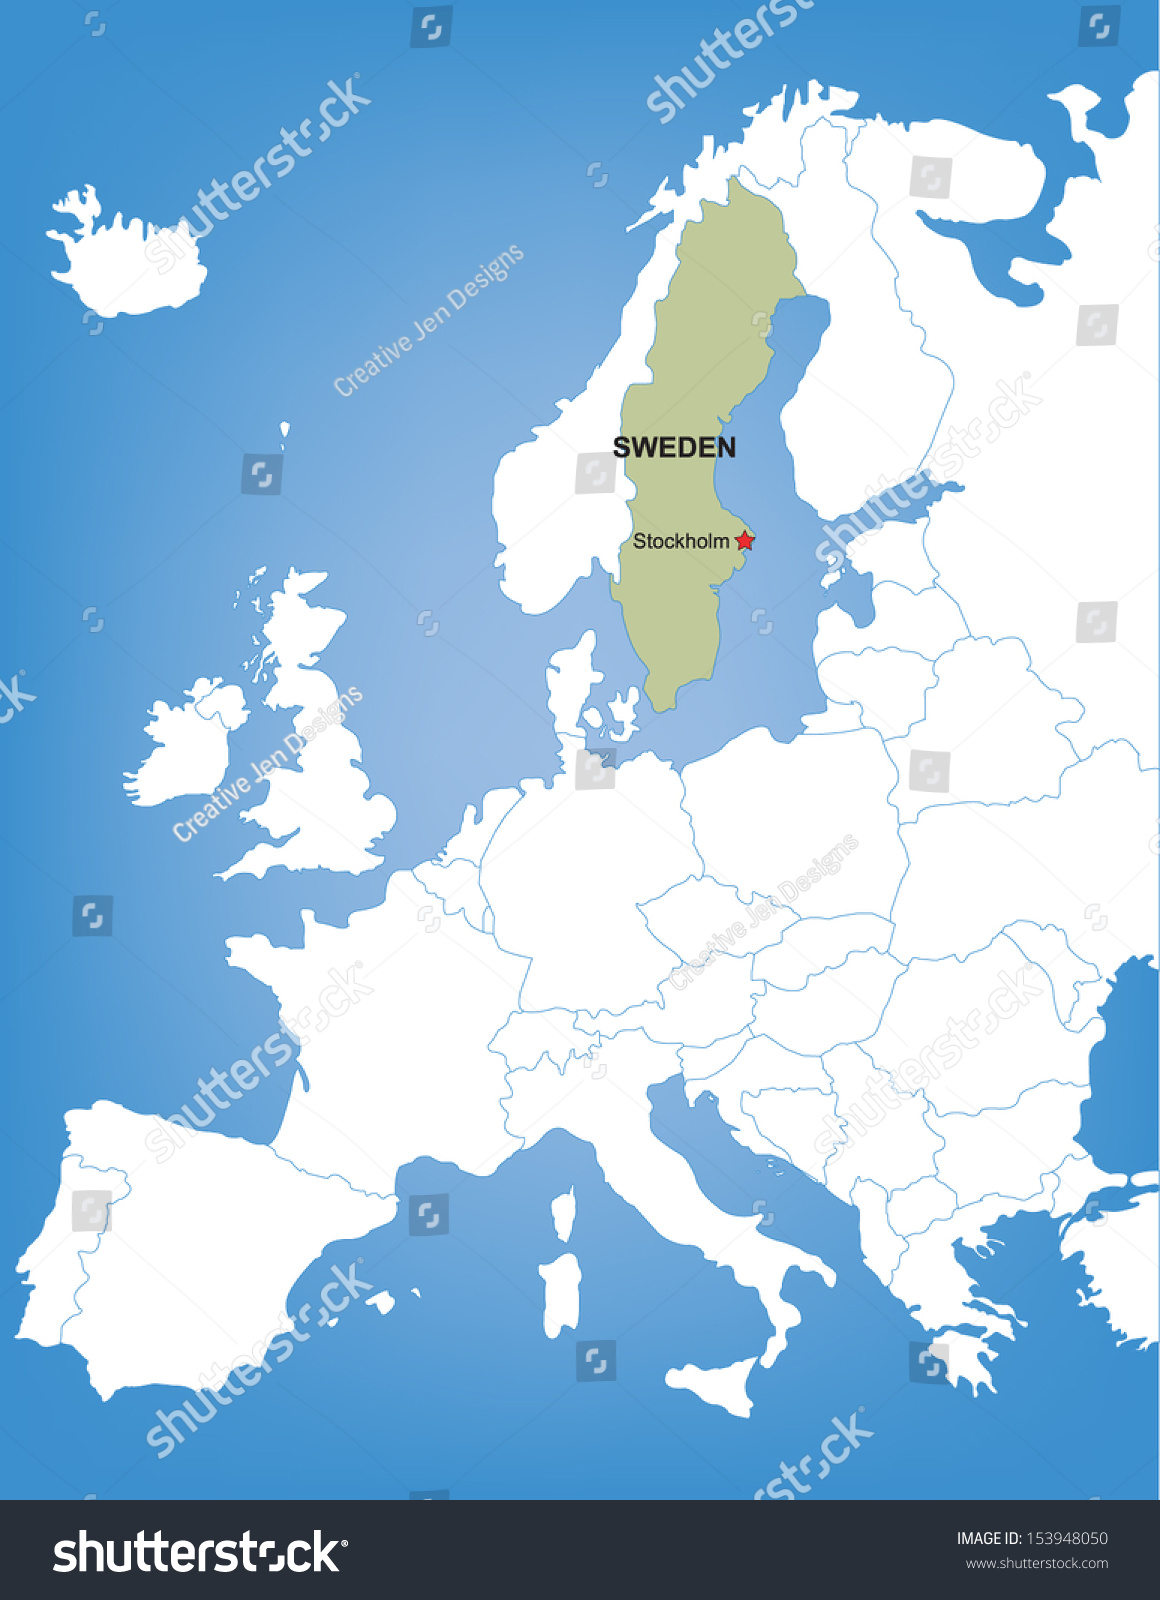 Vector map europe highlighting country sweden stock photo photo vector map of europe highlighting the country of sweden publicscrutiny Image collections